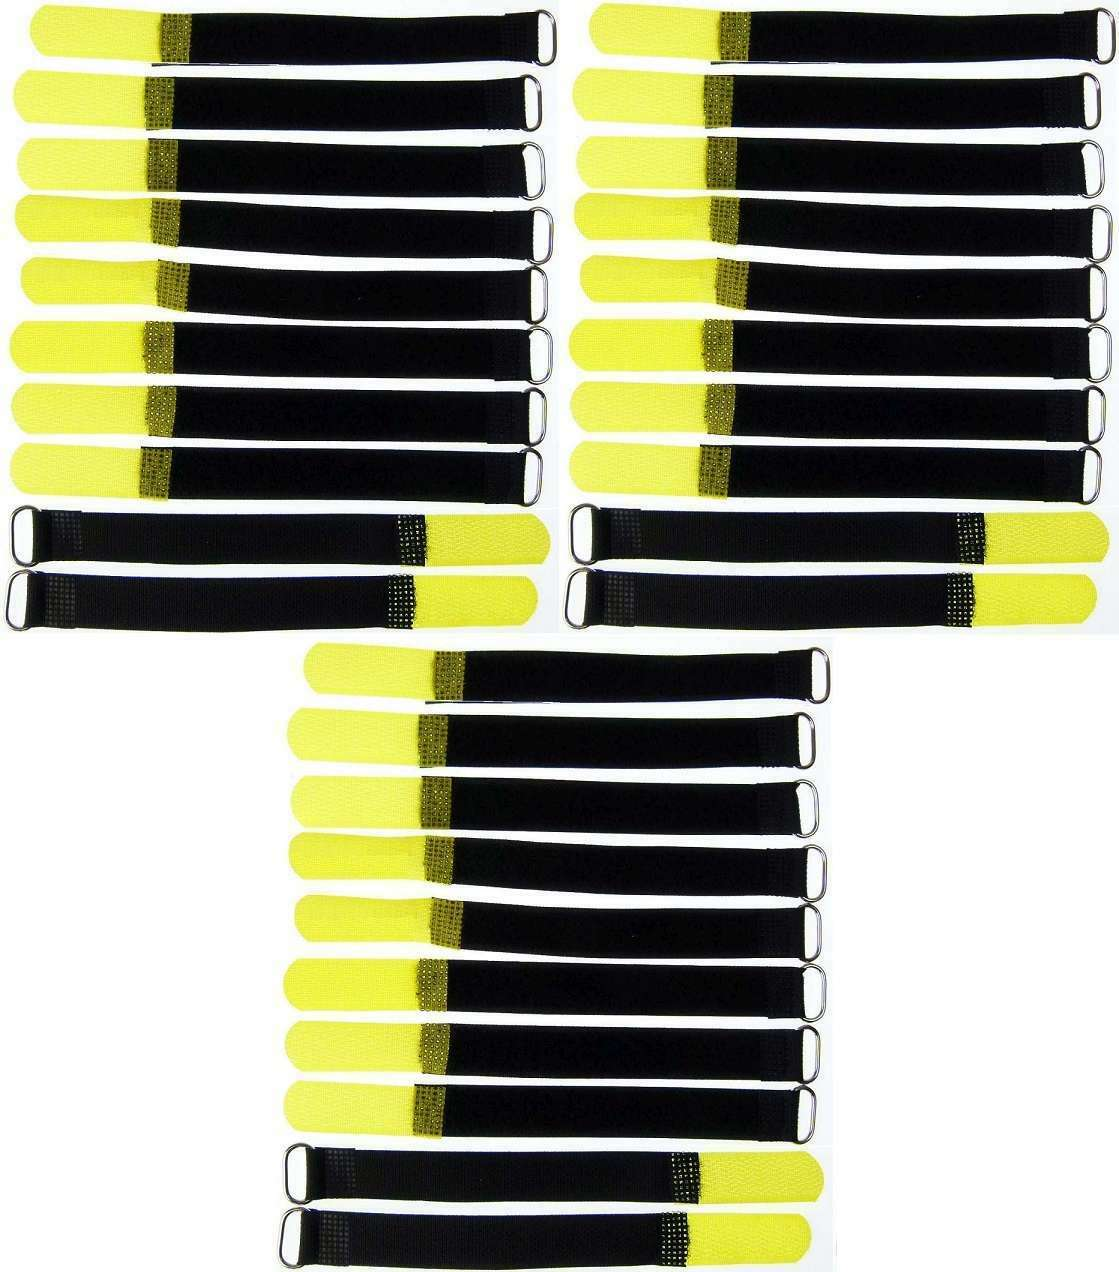 30 x Velcro Cable Ties 16 cm x 16 MM Yellow Velcro Bands Velcro Cable Metal Eyelet